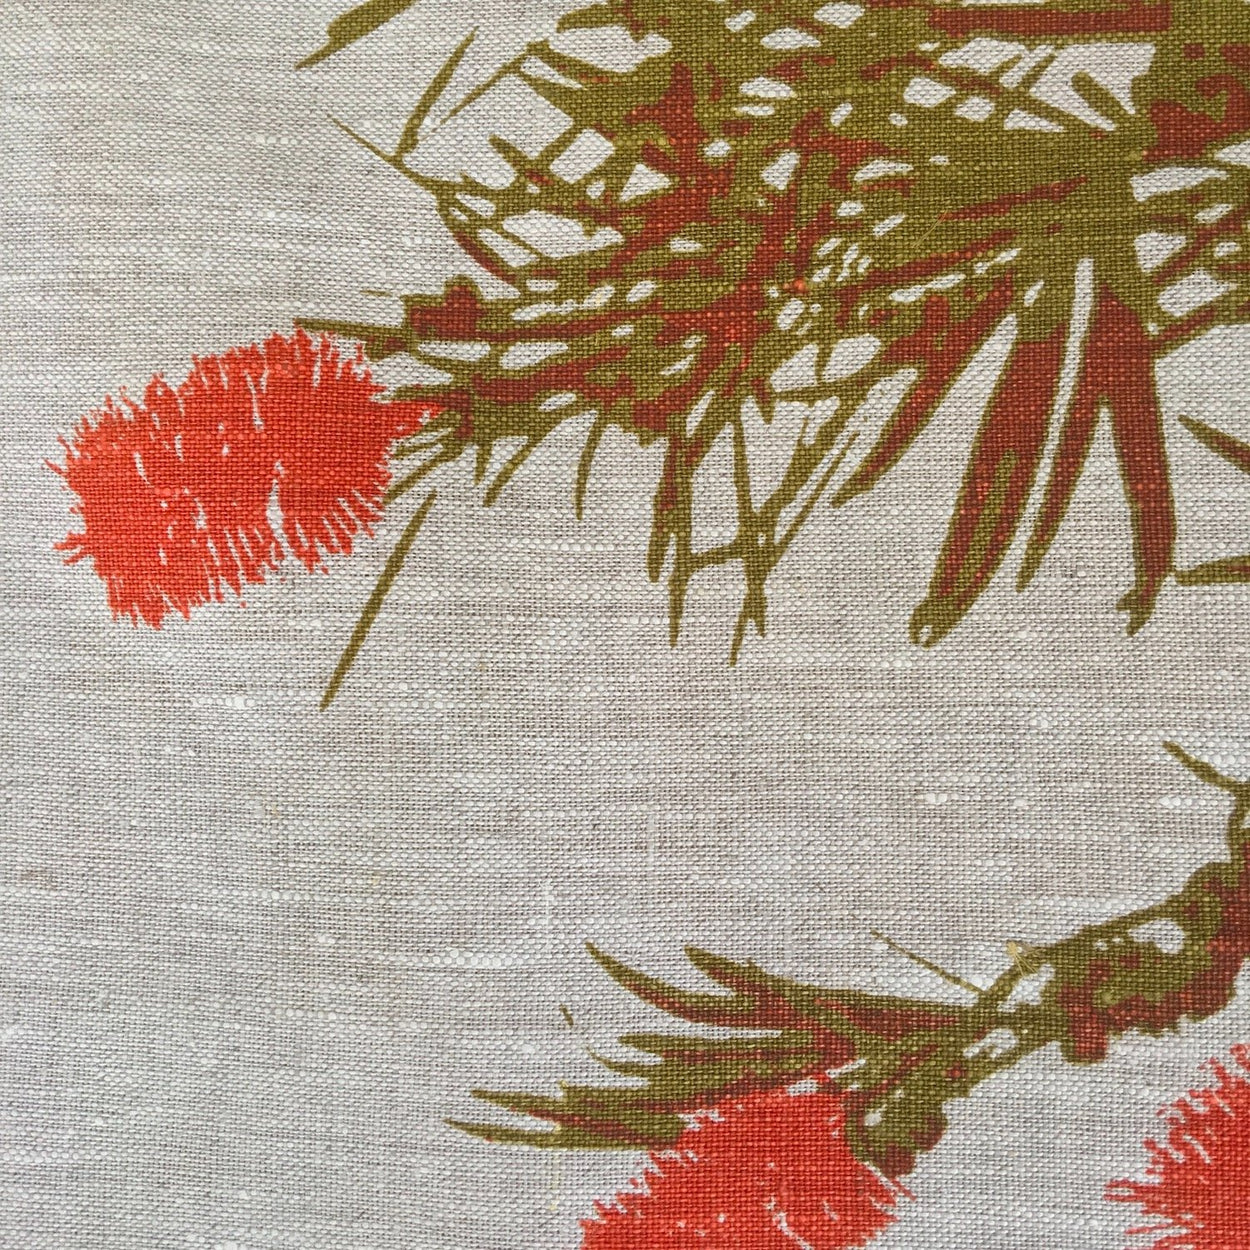 Photo of a Bottlebrush screenprinted on a table runner in close-up.